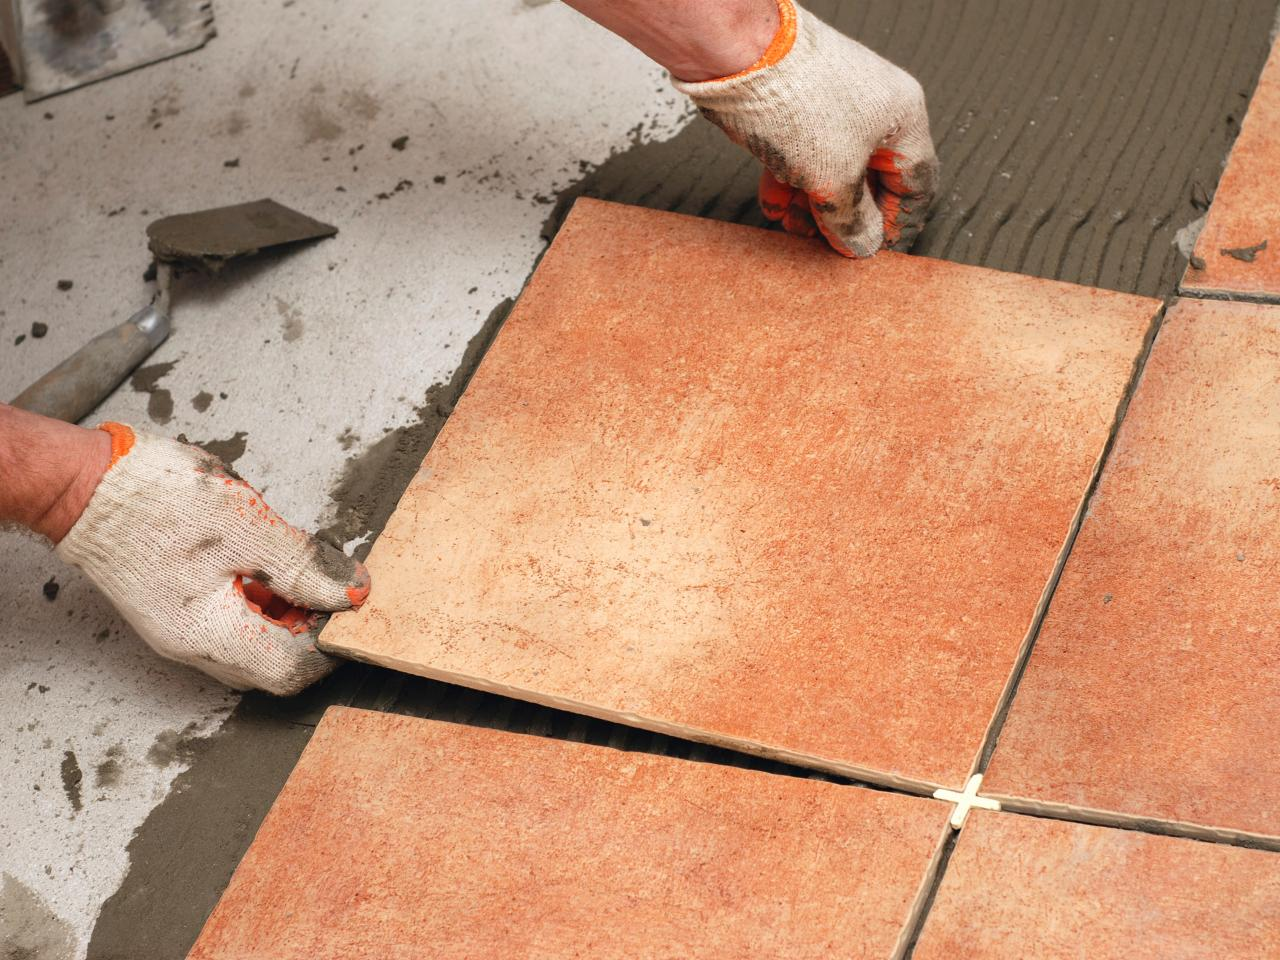 Istock 6844398man laying tile floorings4x3gndhgtvcom istock 6844398man laying tile floorings4x3gndhgtvcom1280960 dailygadgetfo Choice Image